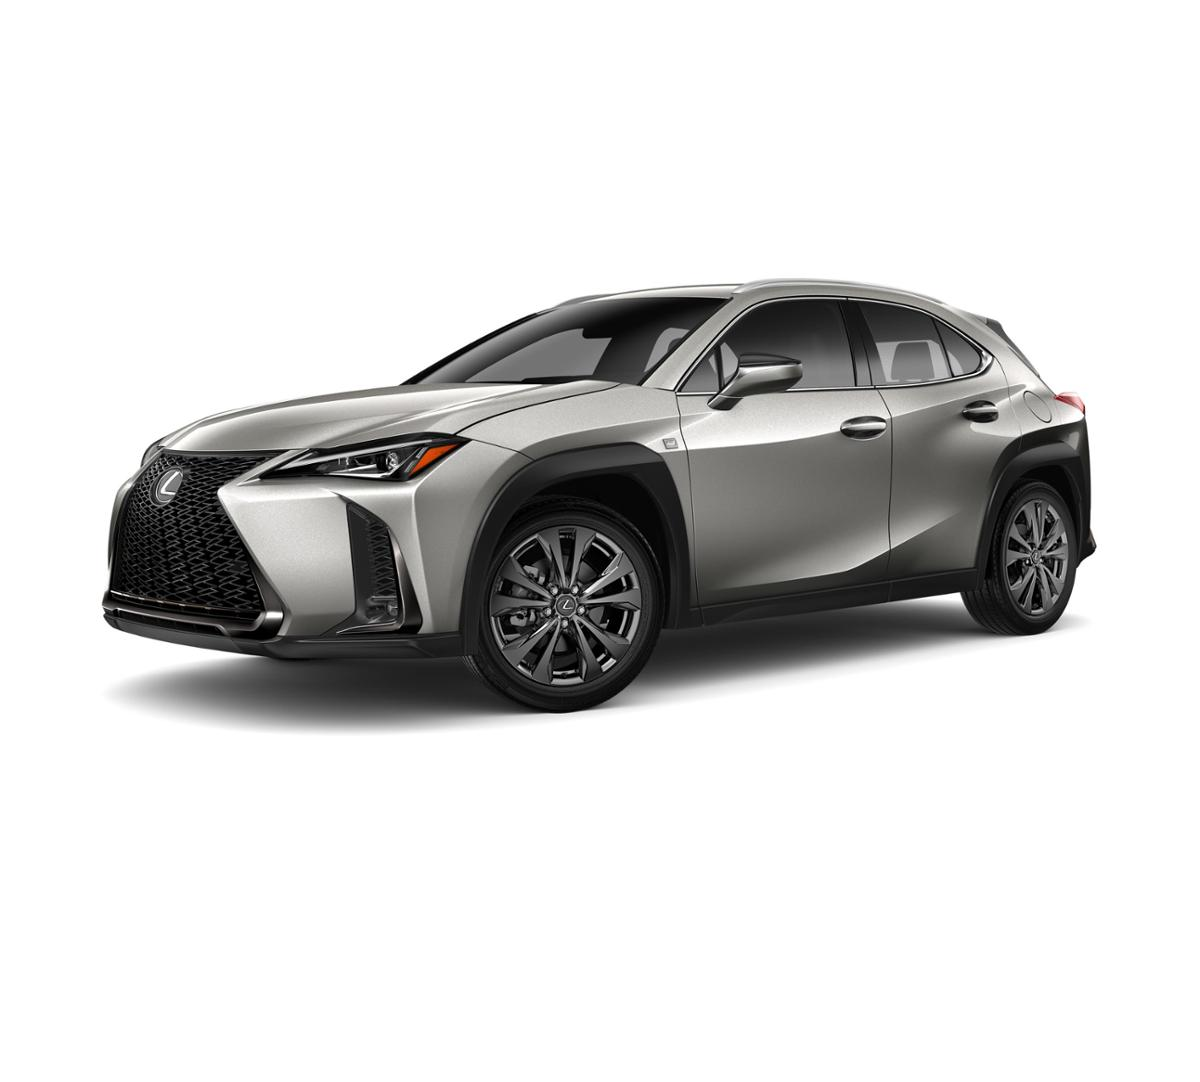 2019 Lexus UX 200 F SPORT For Sale